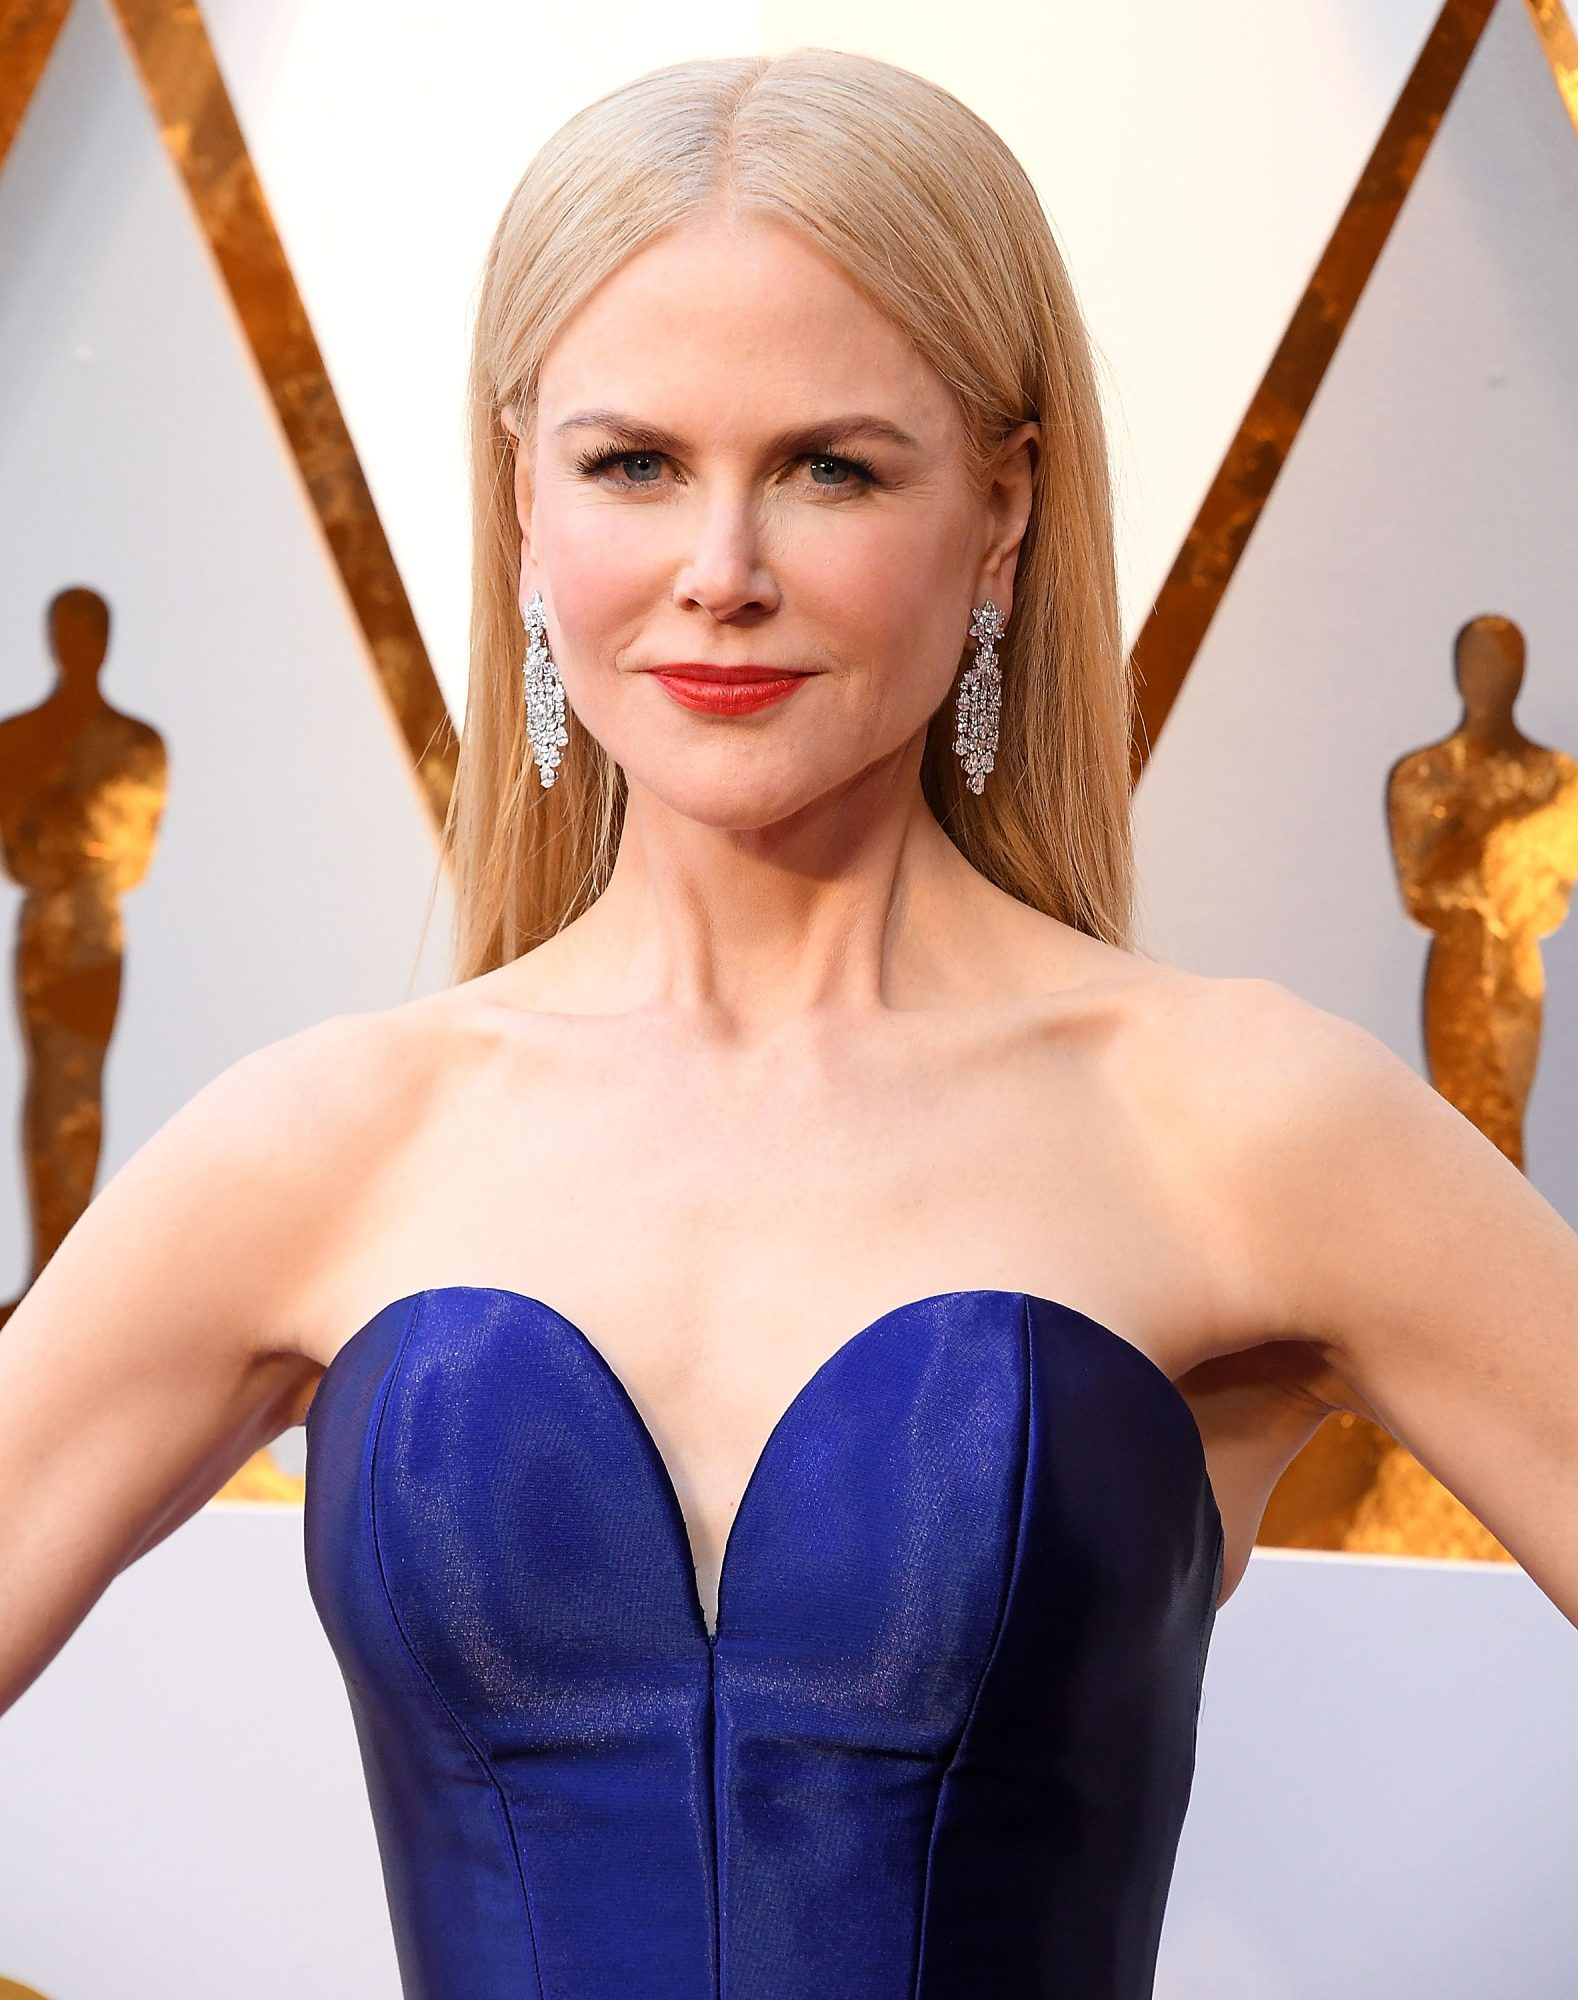 Nicole Kidman Says It's a 'Little Embarrassing' That Keith Urban Called Her a 'Maniac in Bed'